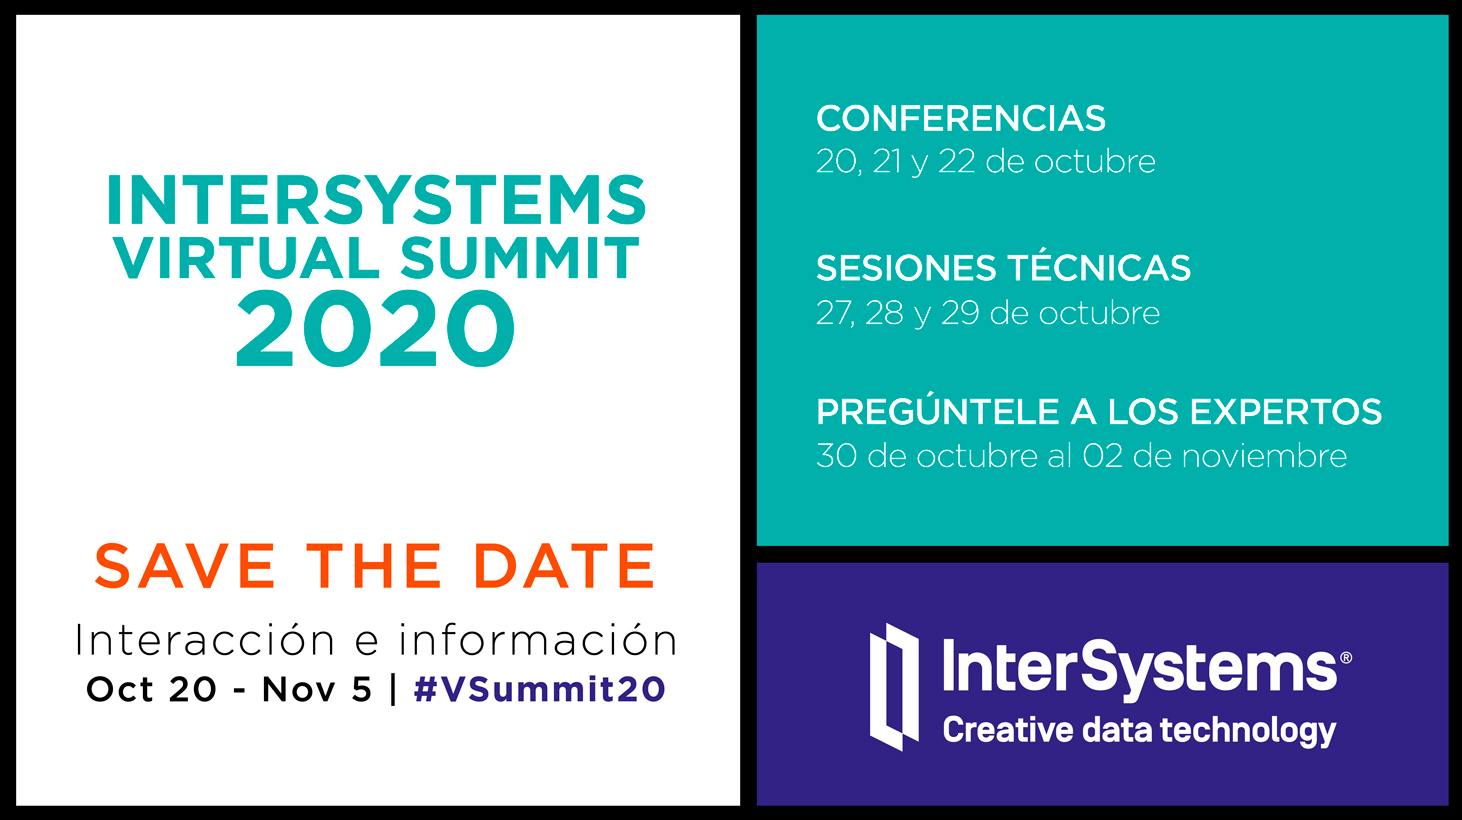 InterSystems Virtual Summit 2020.